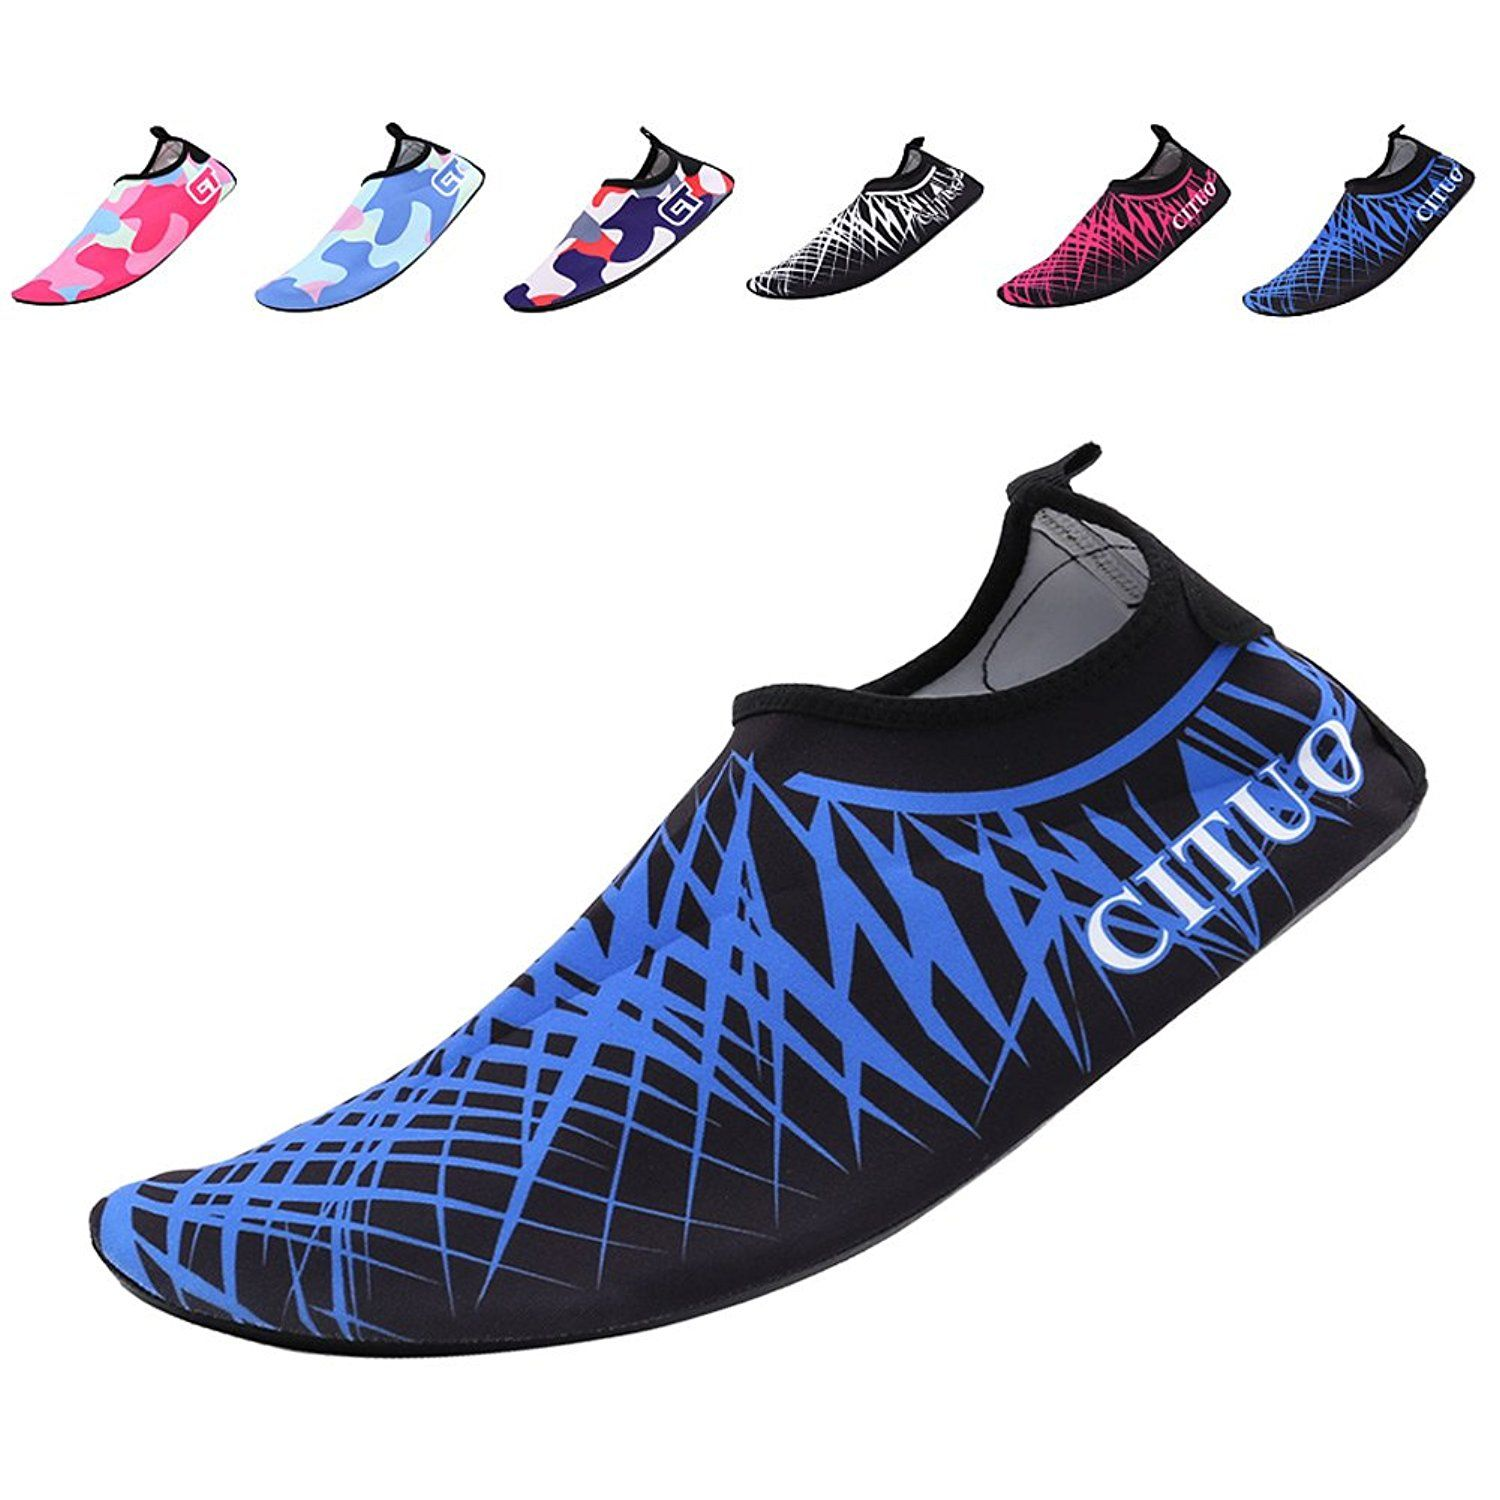 Adult Water Shoes Men Women Quick Dry Barefoot Beach Shoes for Yoga Swim Surf Excrise